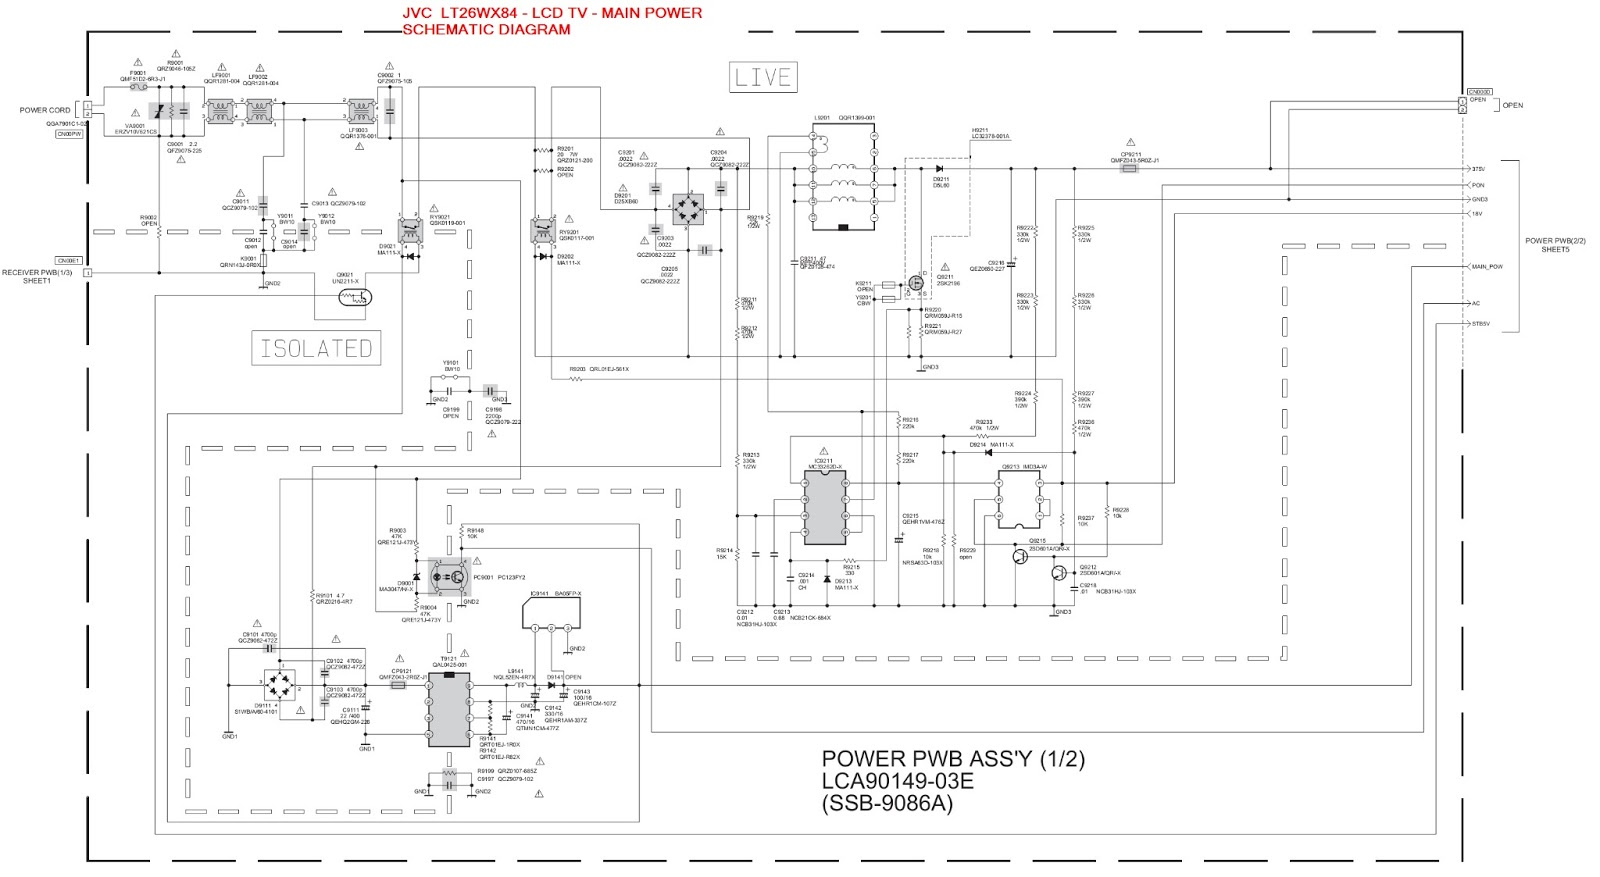 Jvc Lt 26wx84 Lcd Tv Main Power Supply Schematic Diagram Circuit Of 1 2 Click On Image To Enlarge